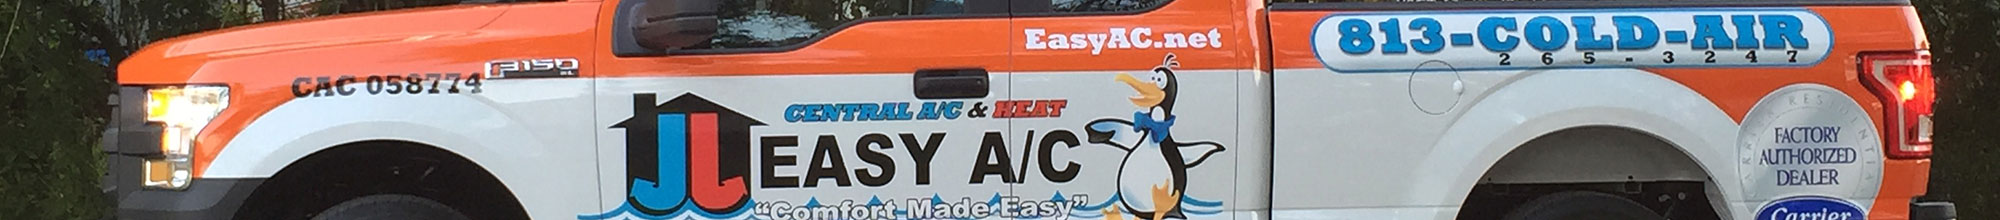 Why Easy AC?